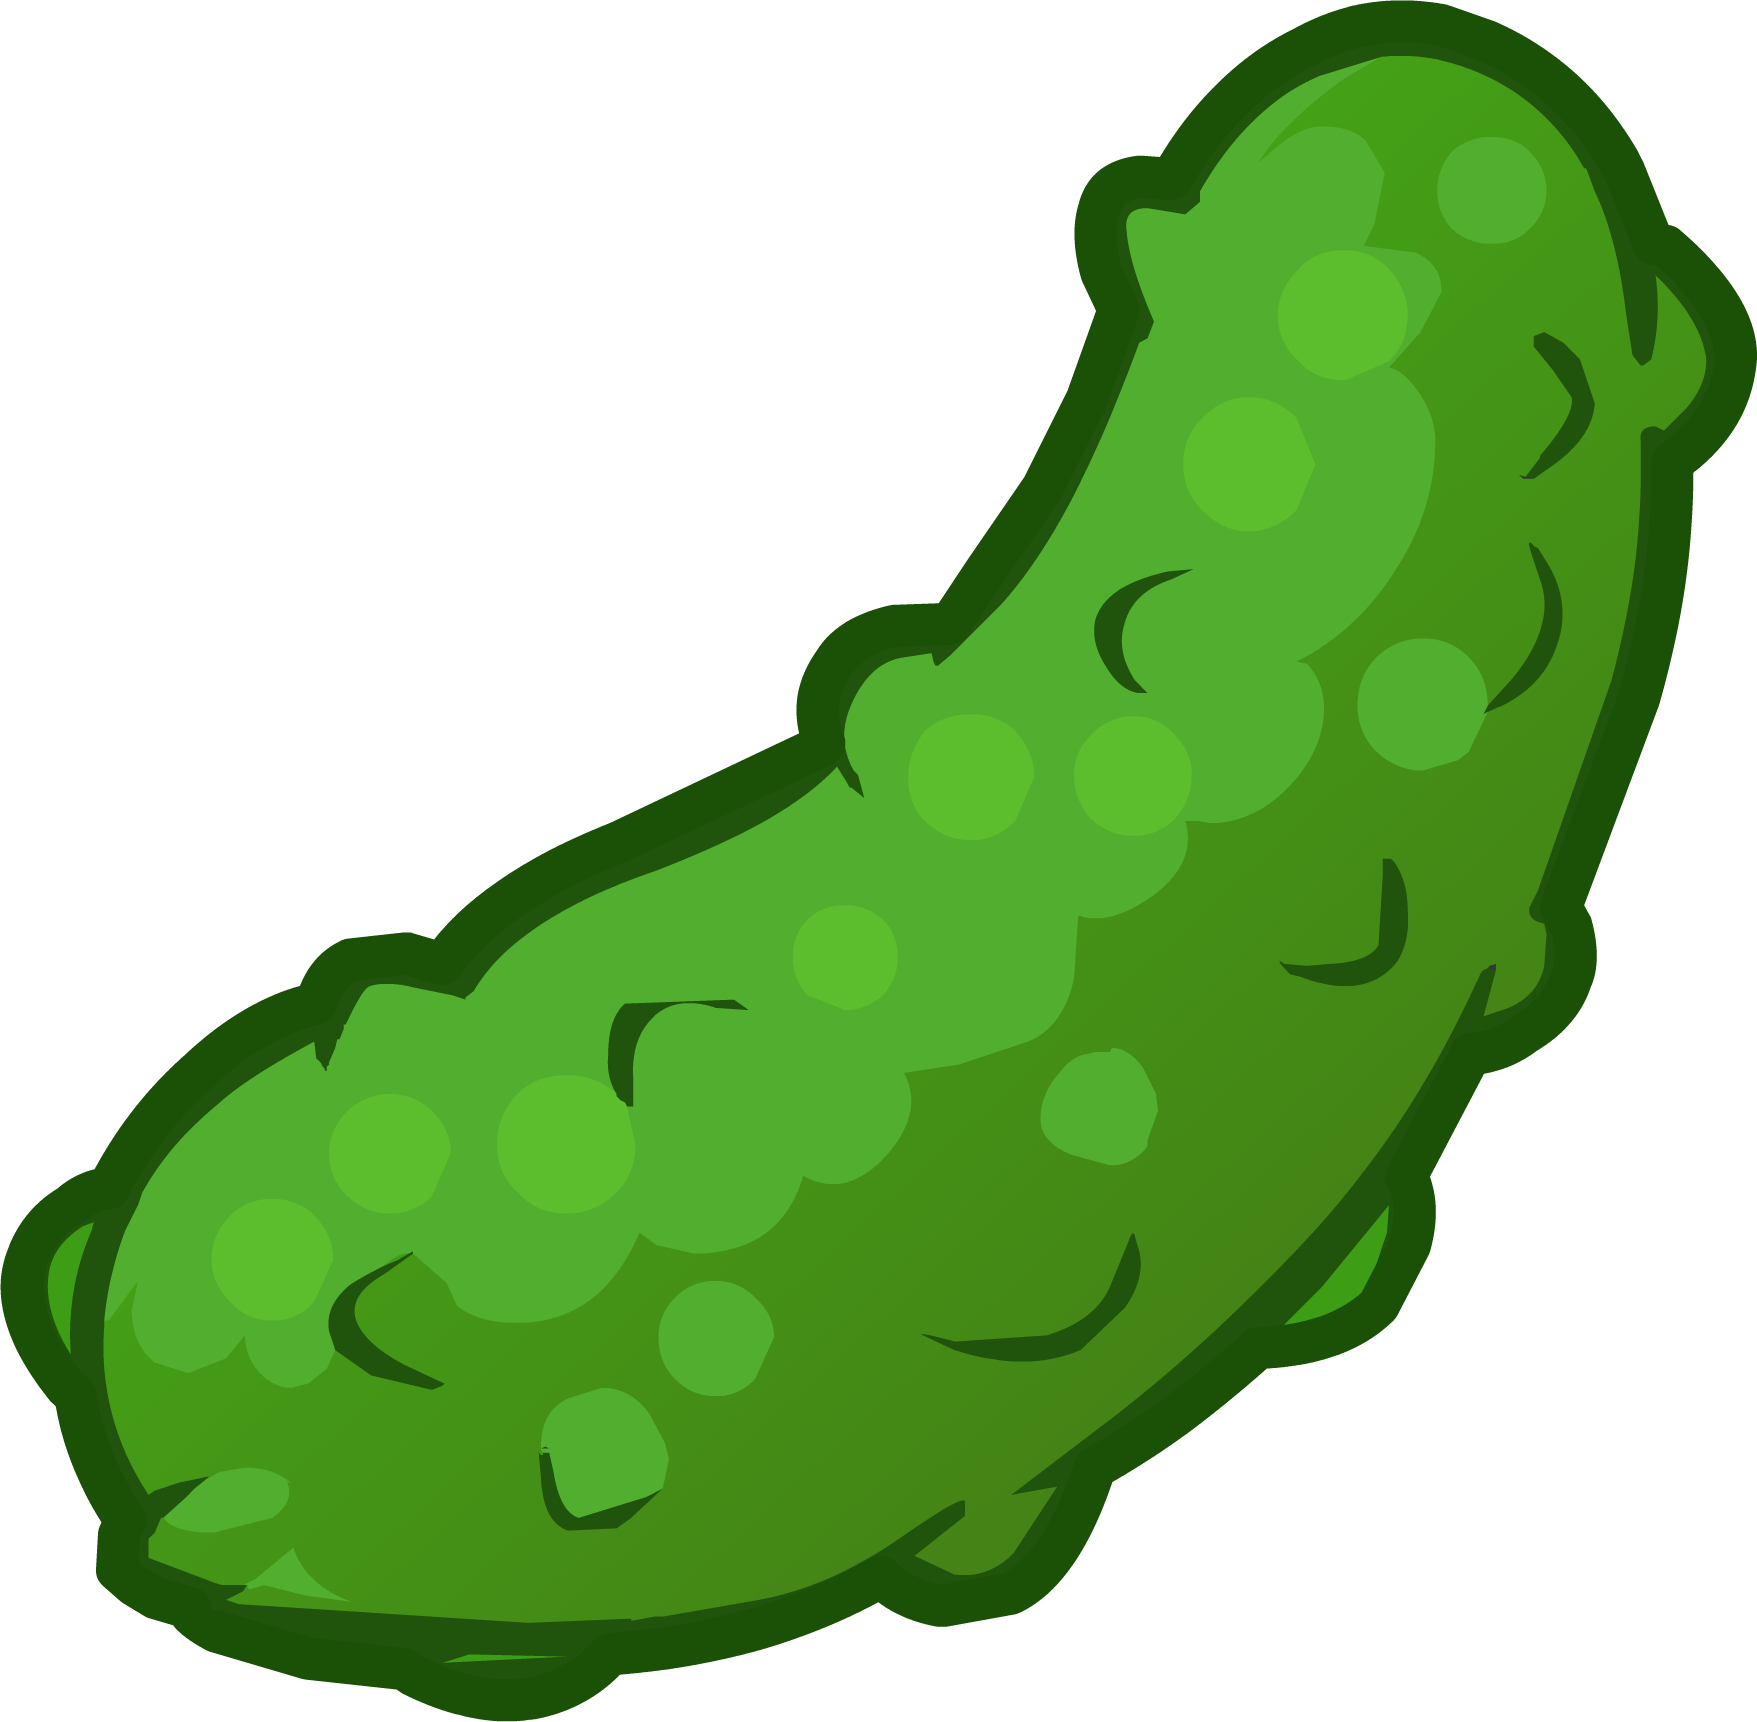 10 Pickles - Club Penguin Wiki - The free, editable ...